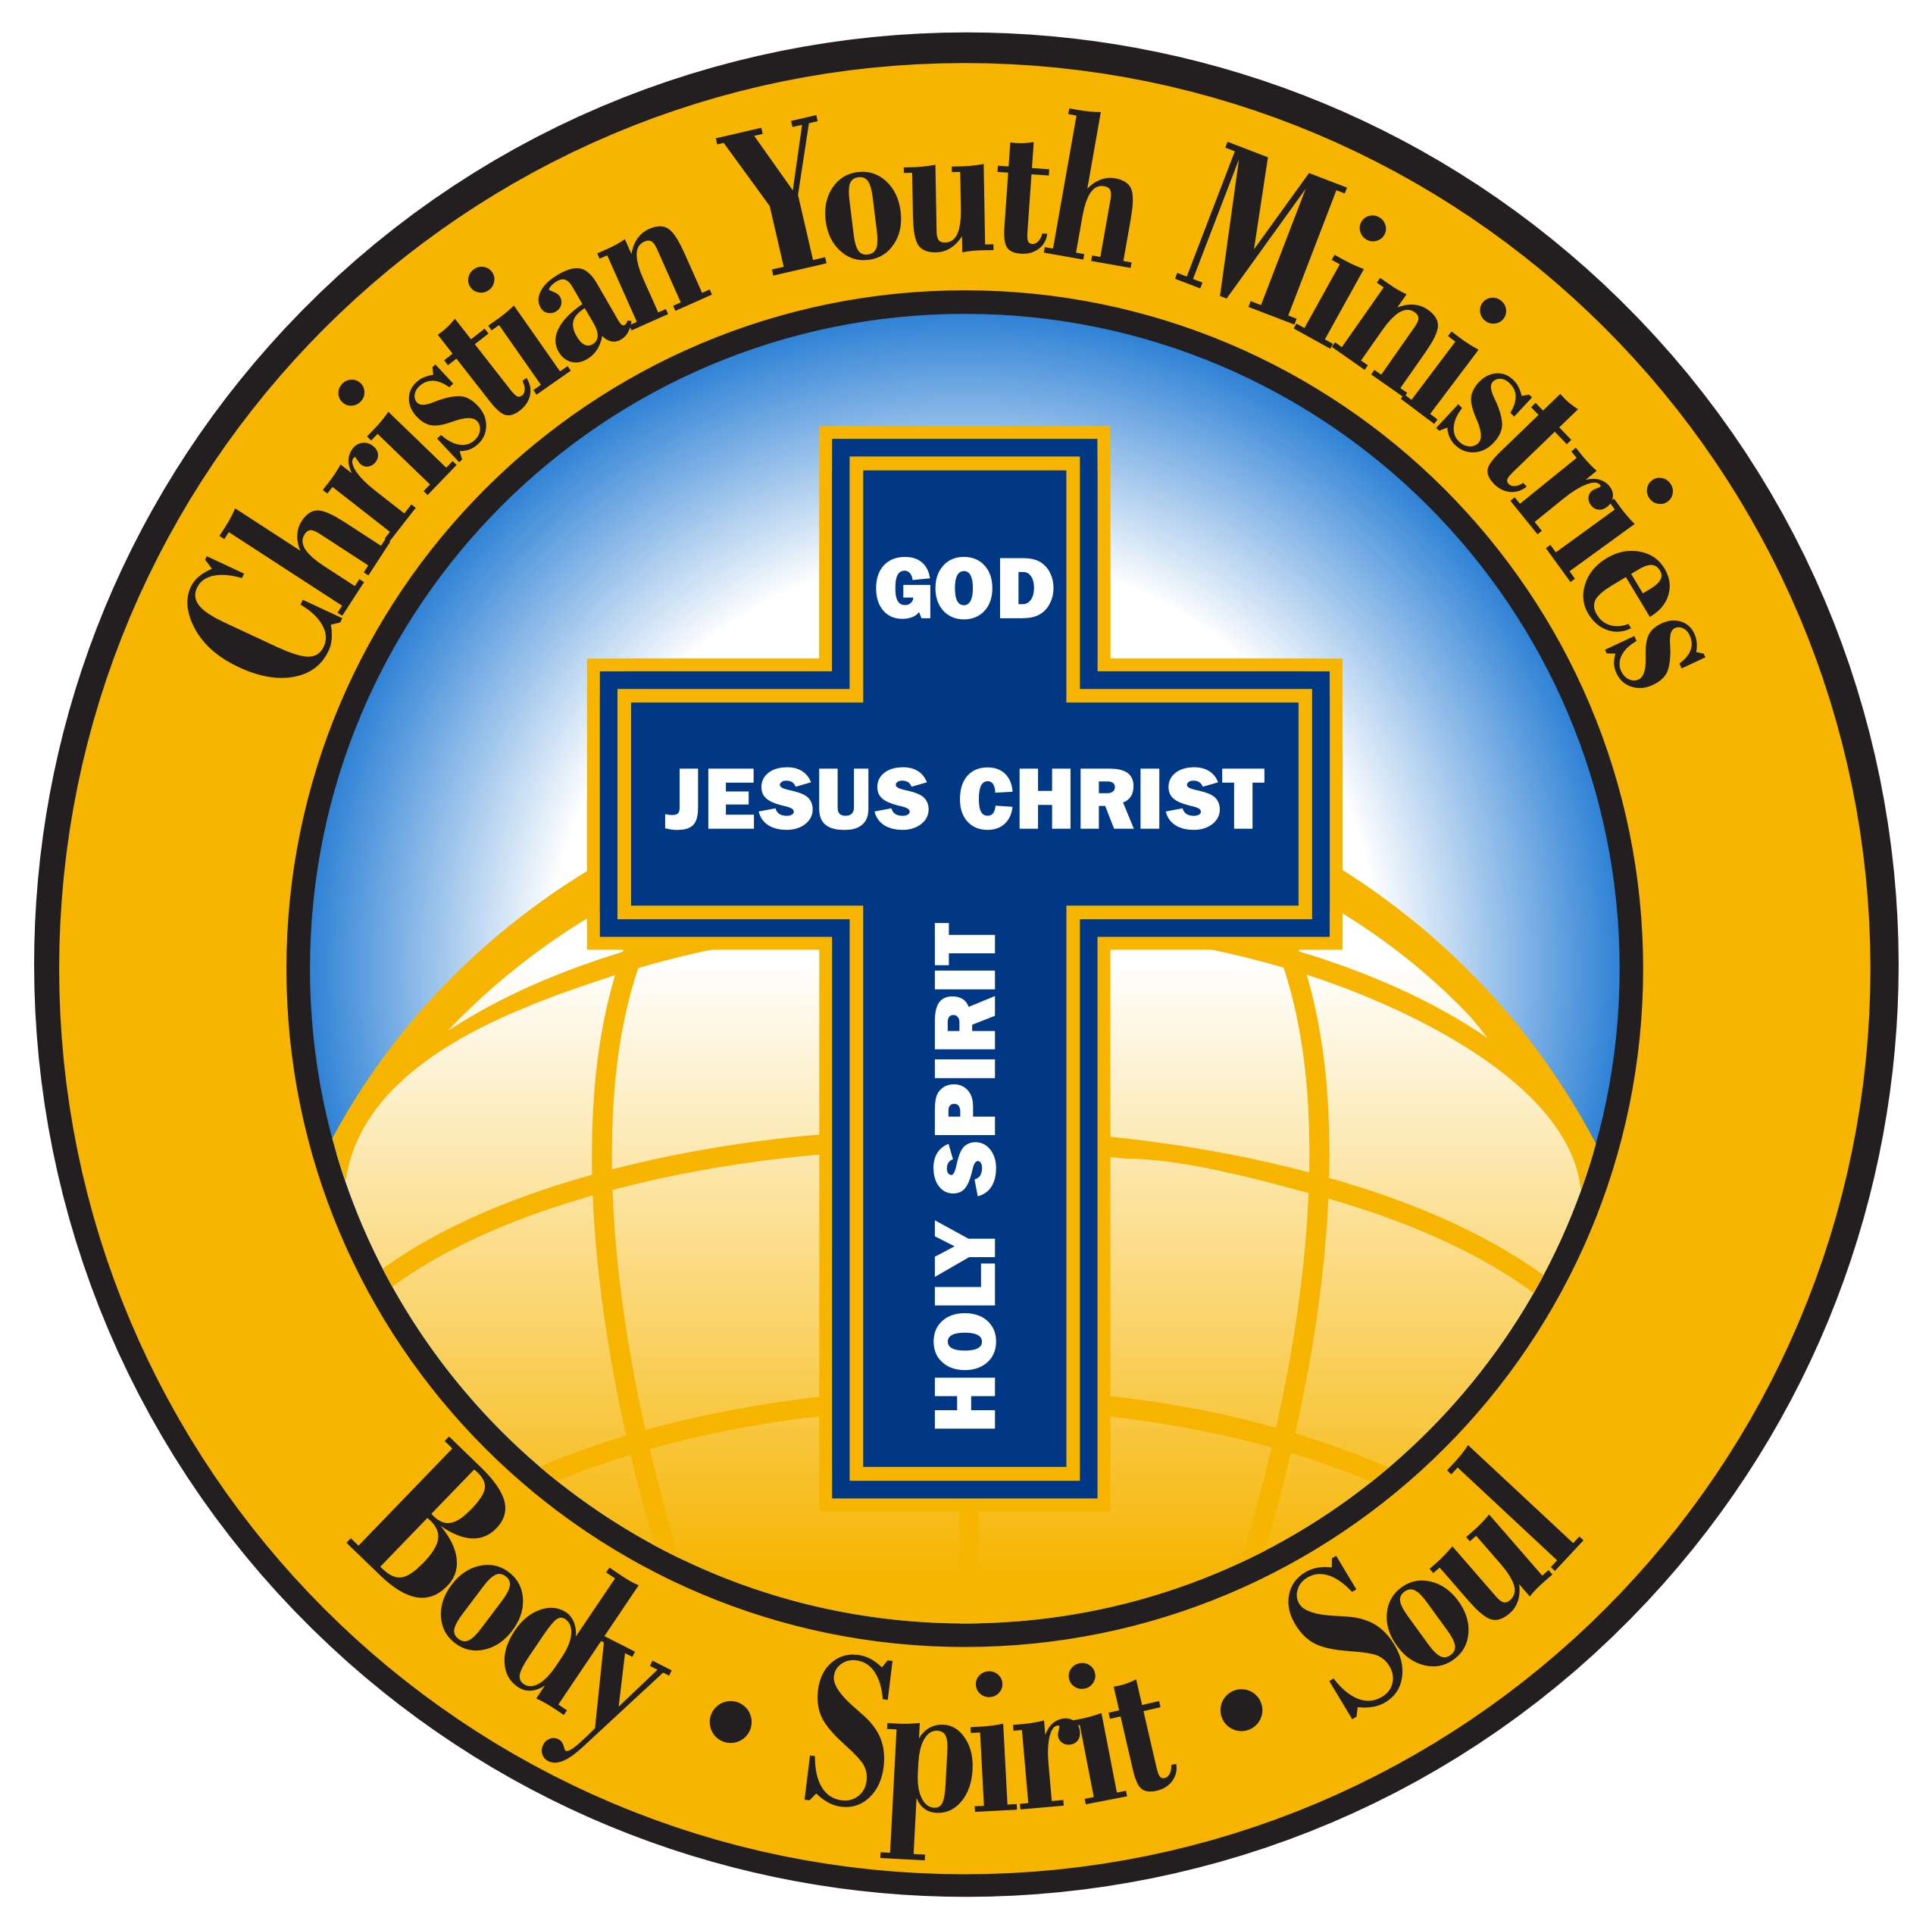 Quotes For Youth Ministrys. QuotesGram